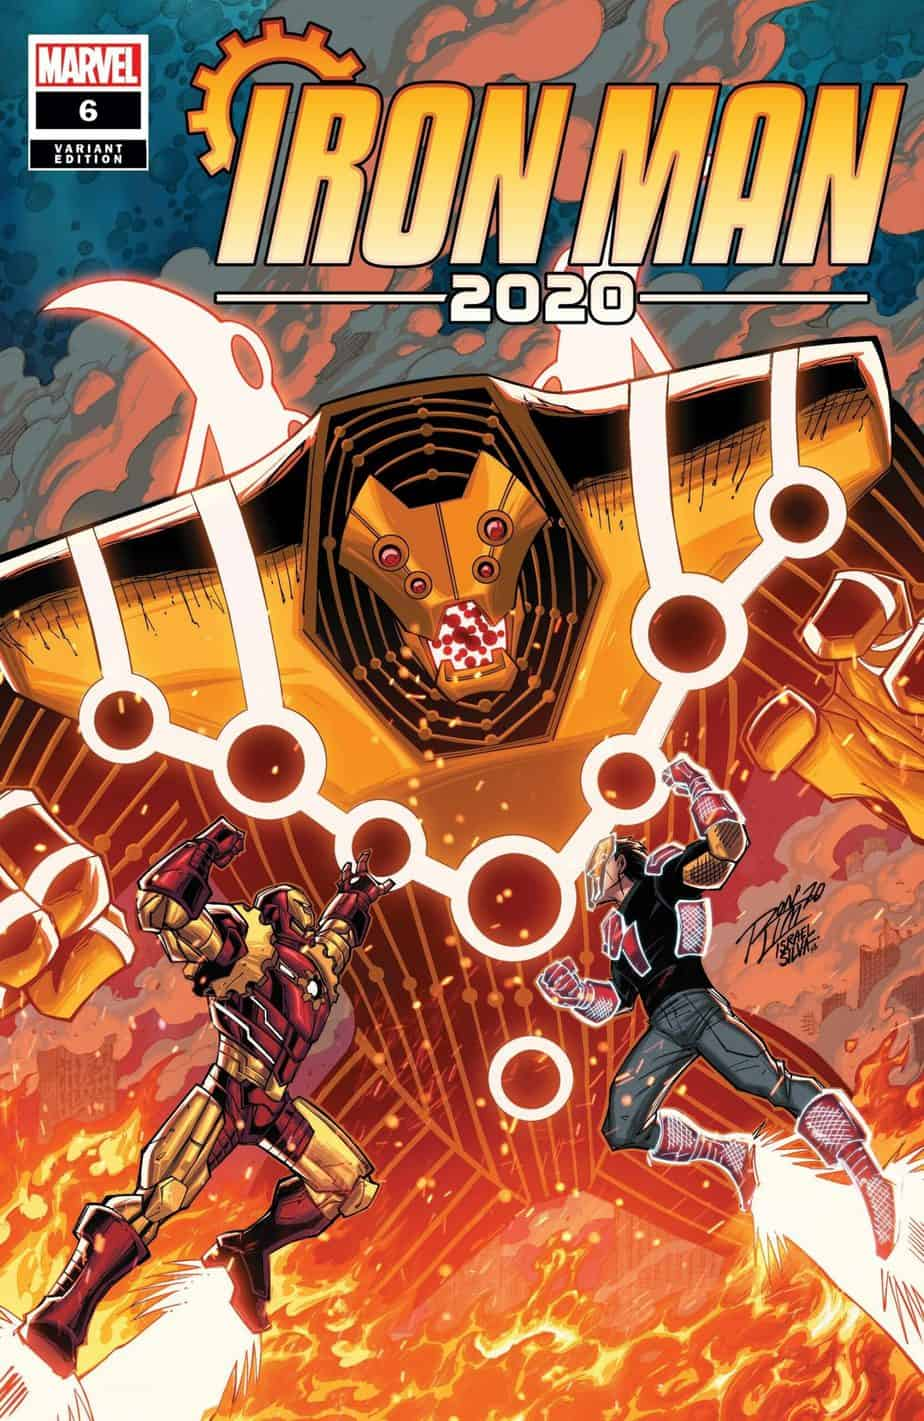 IRON MAN 2020 #6 - Cover D